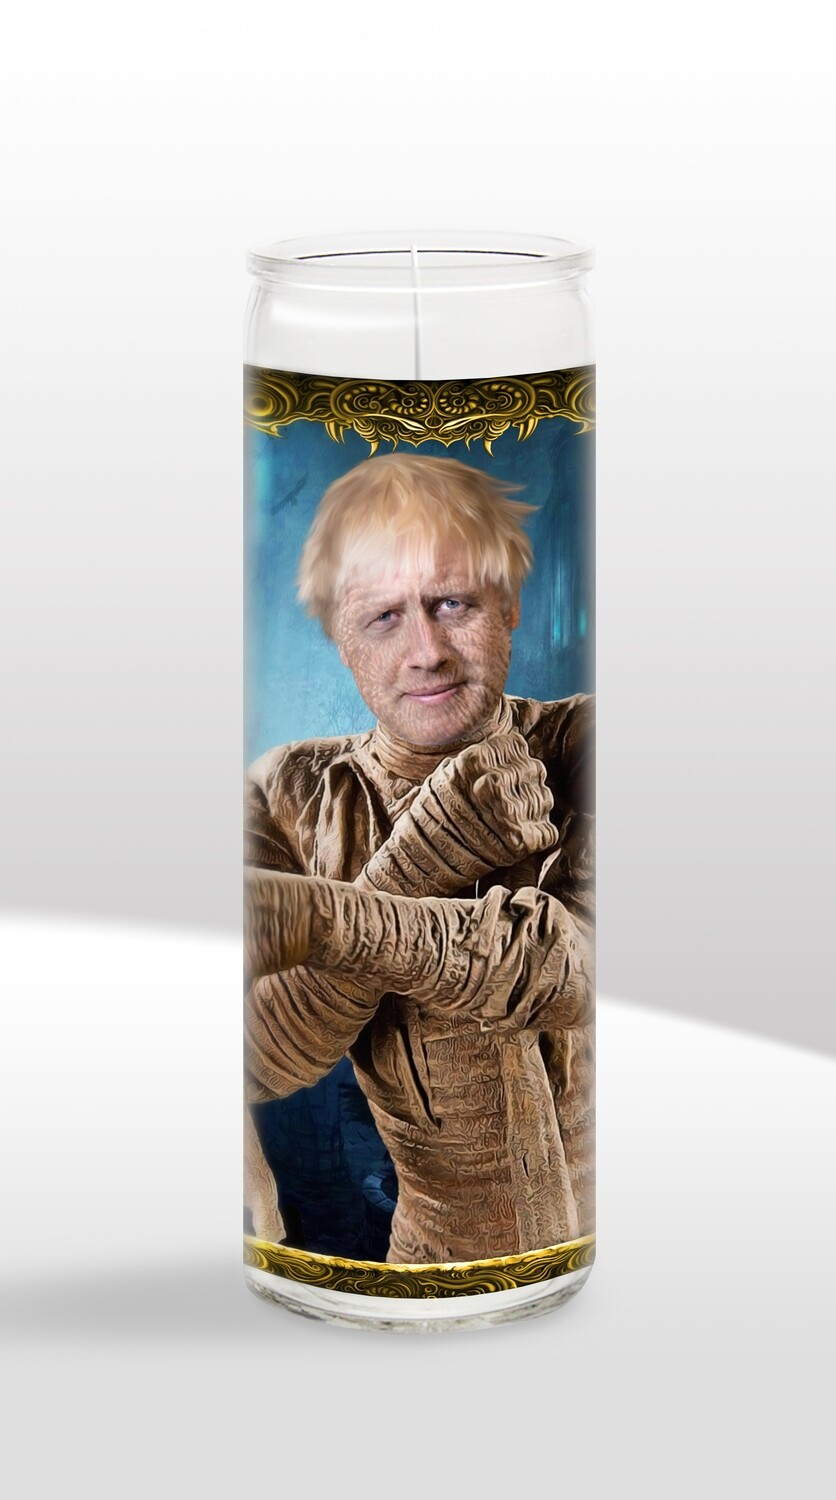 BORIS JOHNSON - HALLOWEEN EDITION